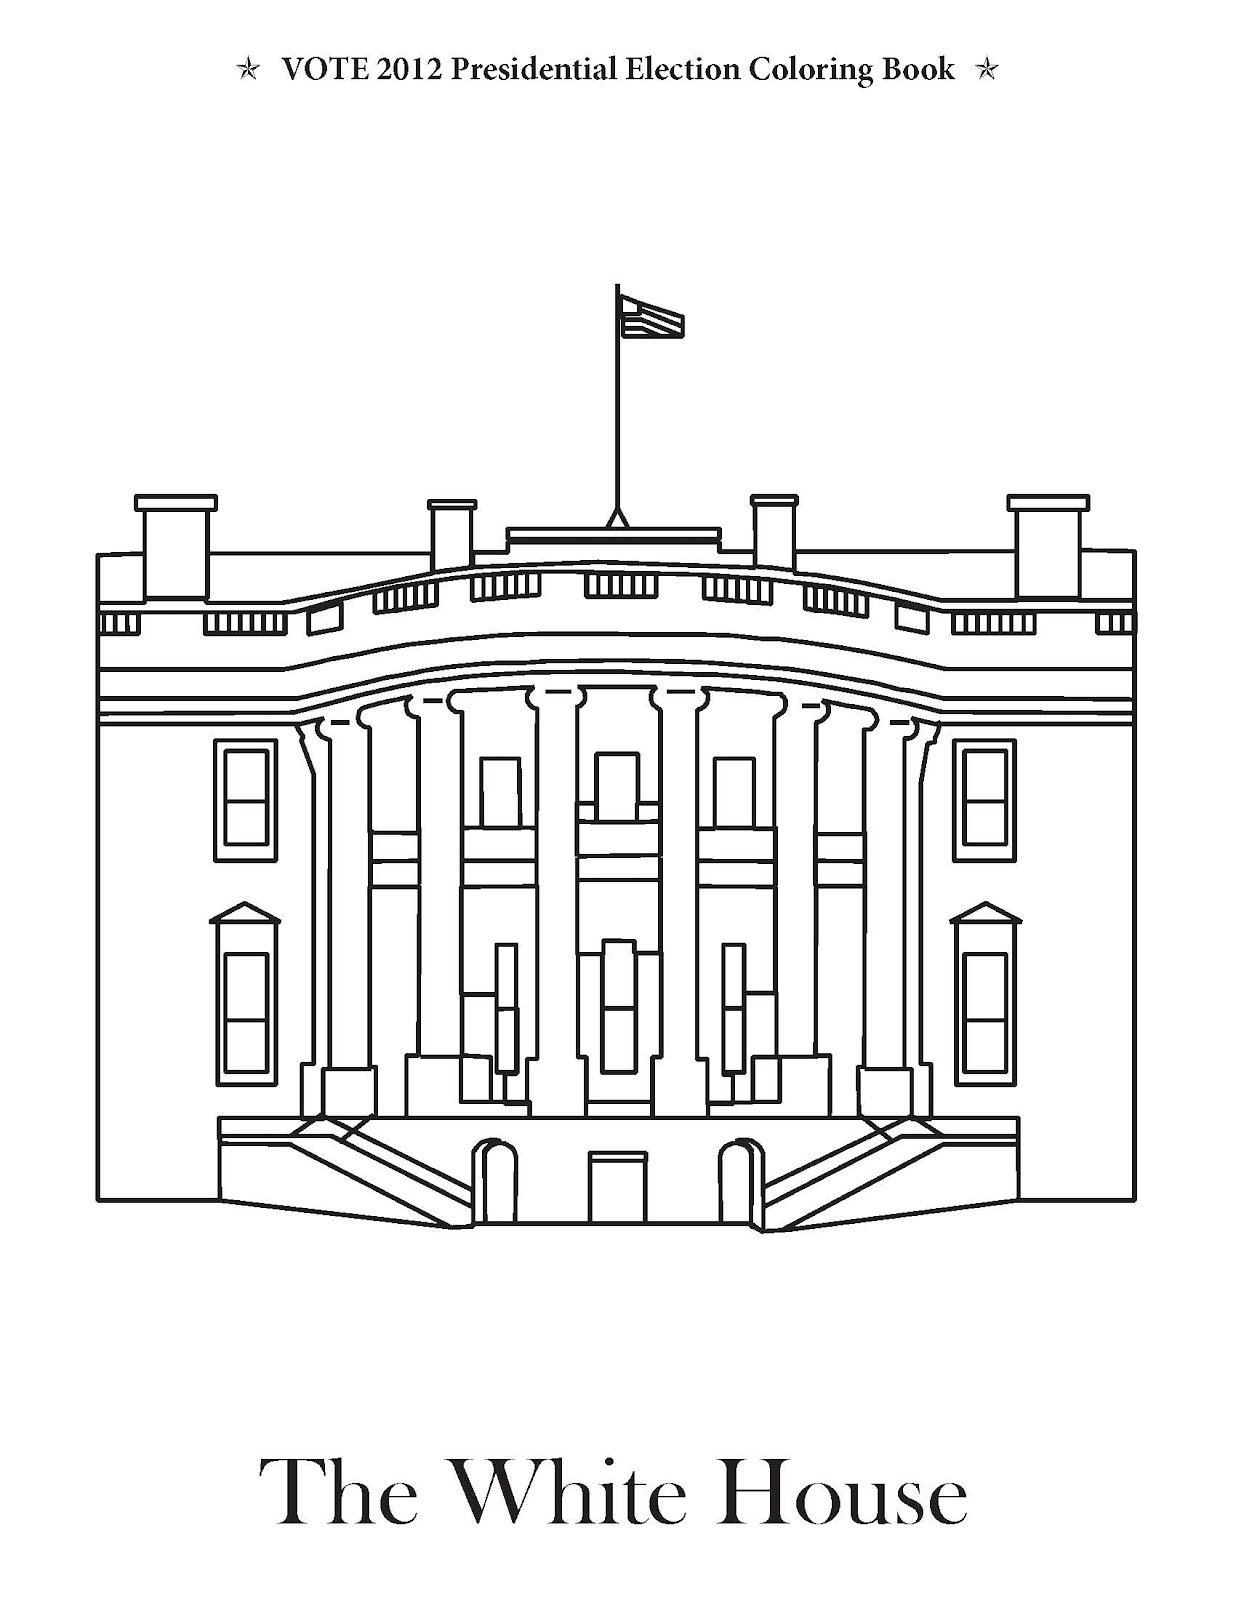 Vote 2012 presidential election coloring book for Joe biden coloring pages